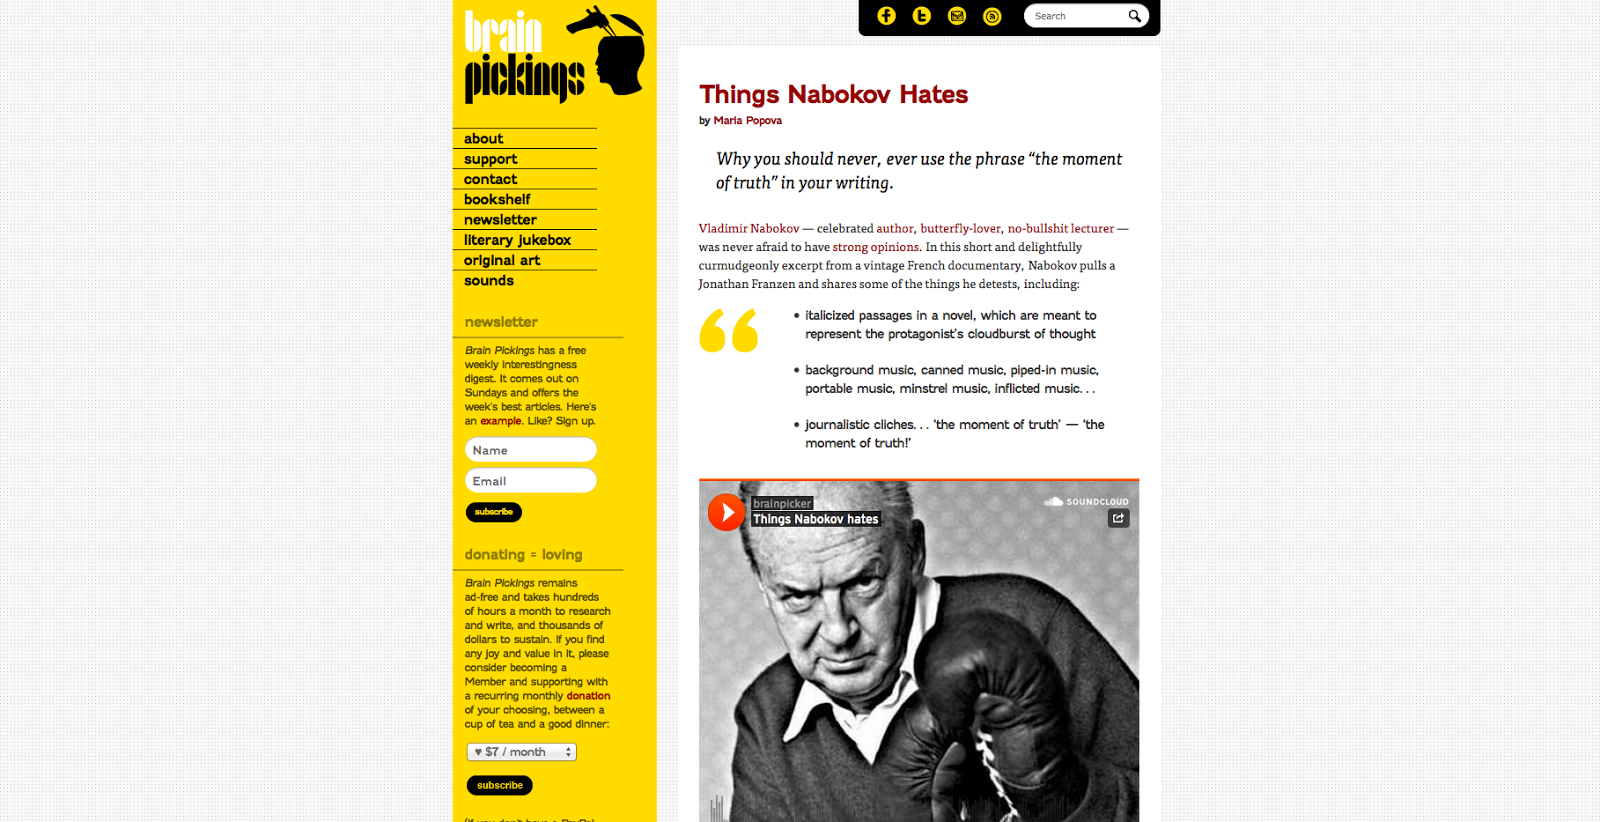 http://www.brainpickings.org/index.php/2013/03/29/things-nabokov-hates/